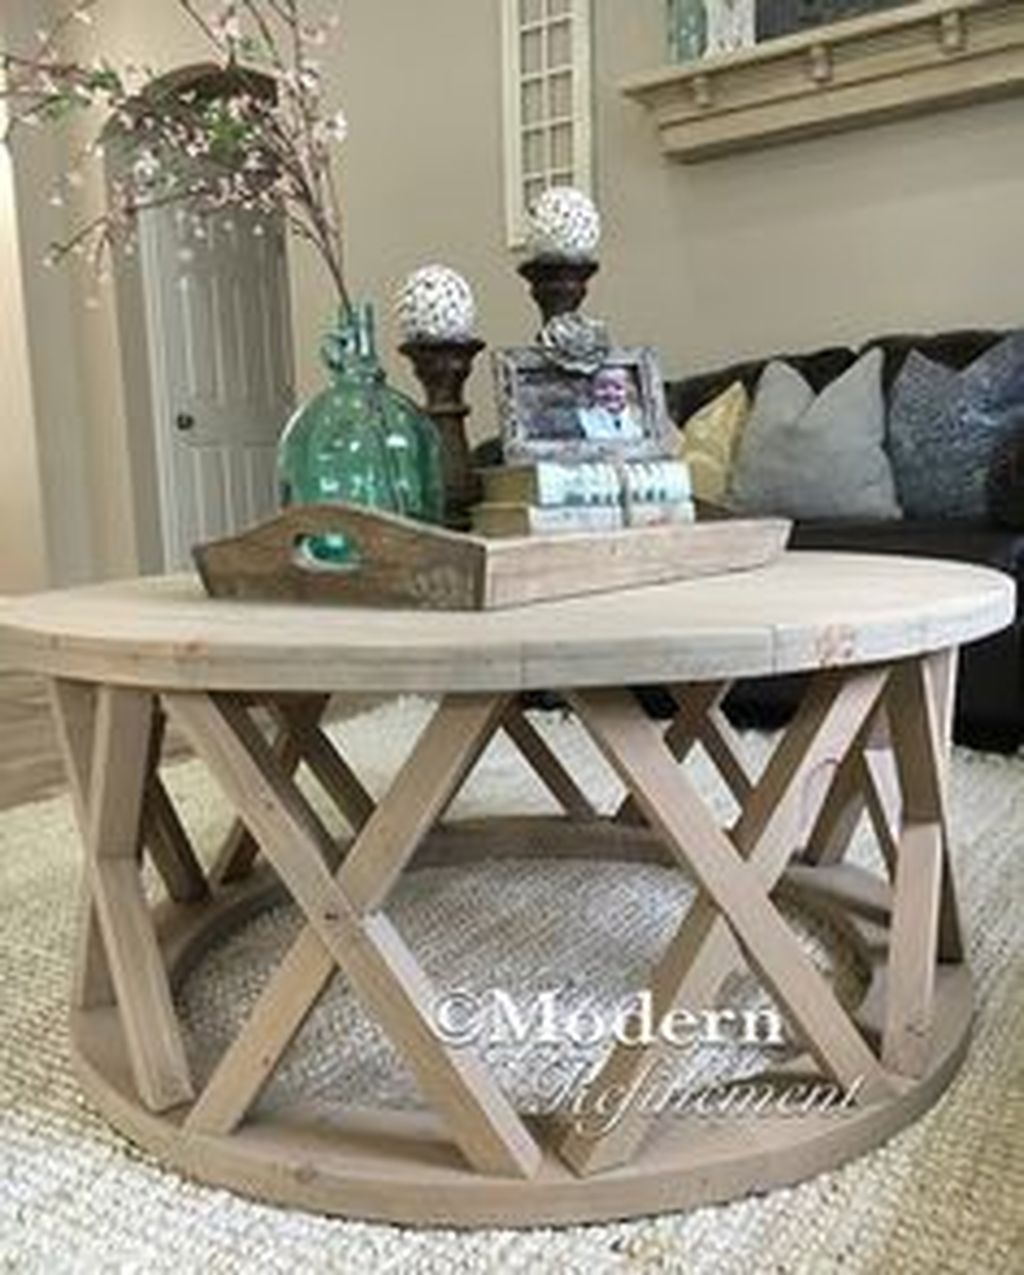 Creative Diy Coffee Table Ideas For Your Home 53